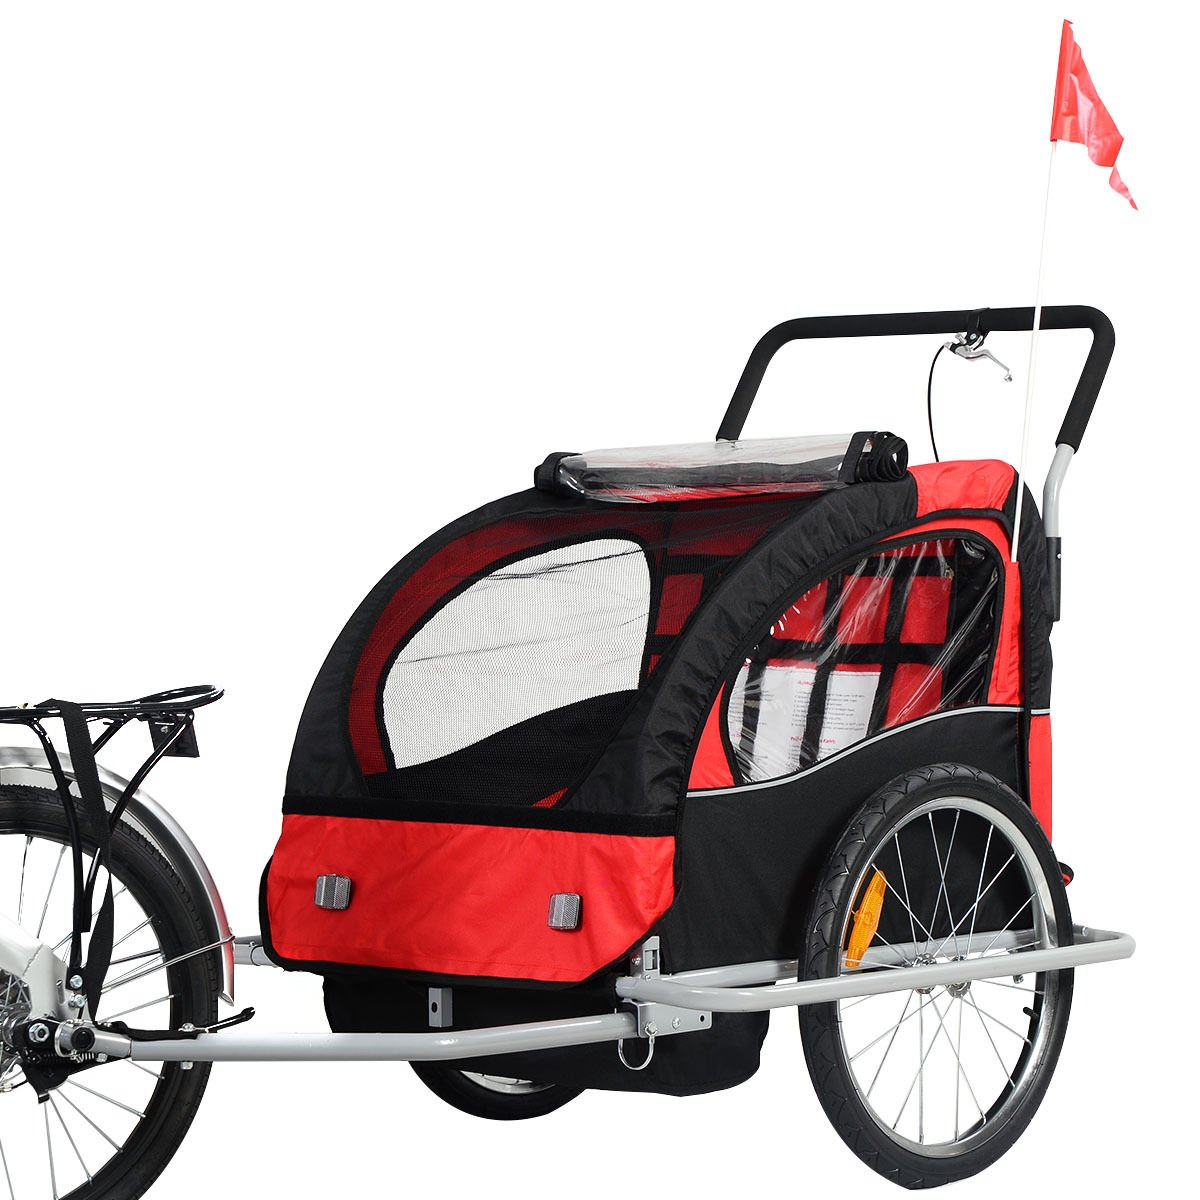 Giantex 2 In 1 Double Child Baby Bike Trailer Bicycle